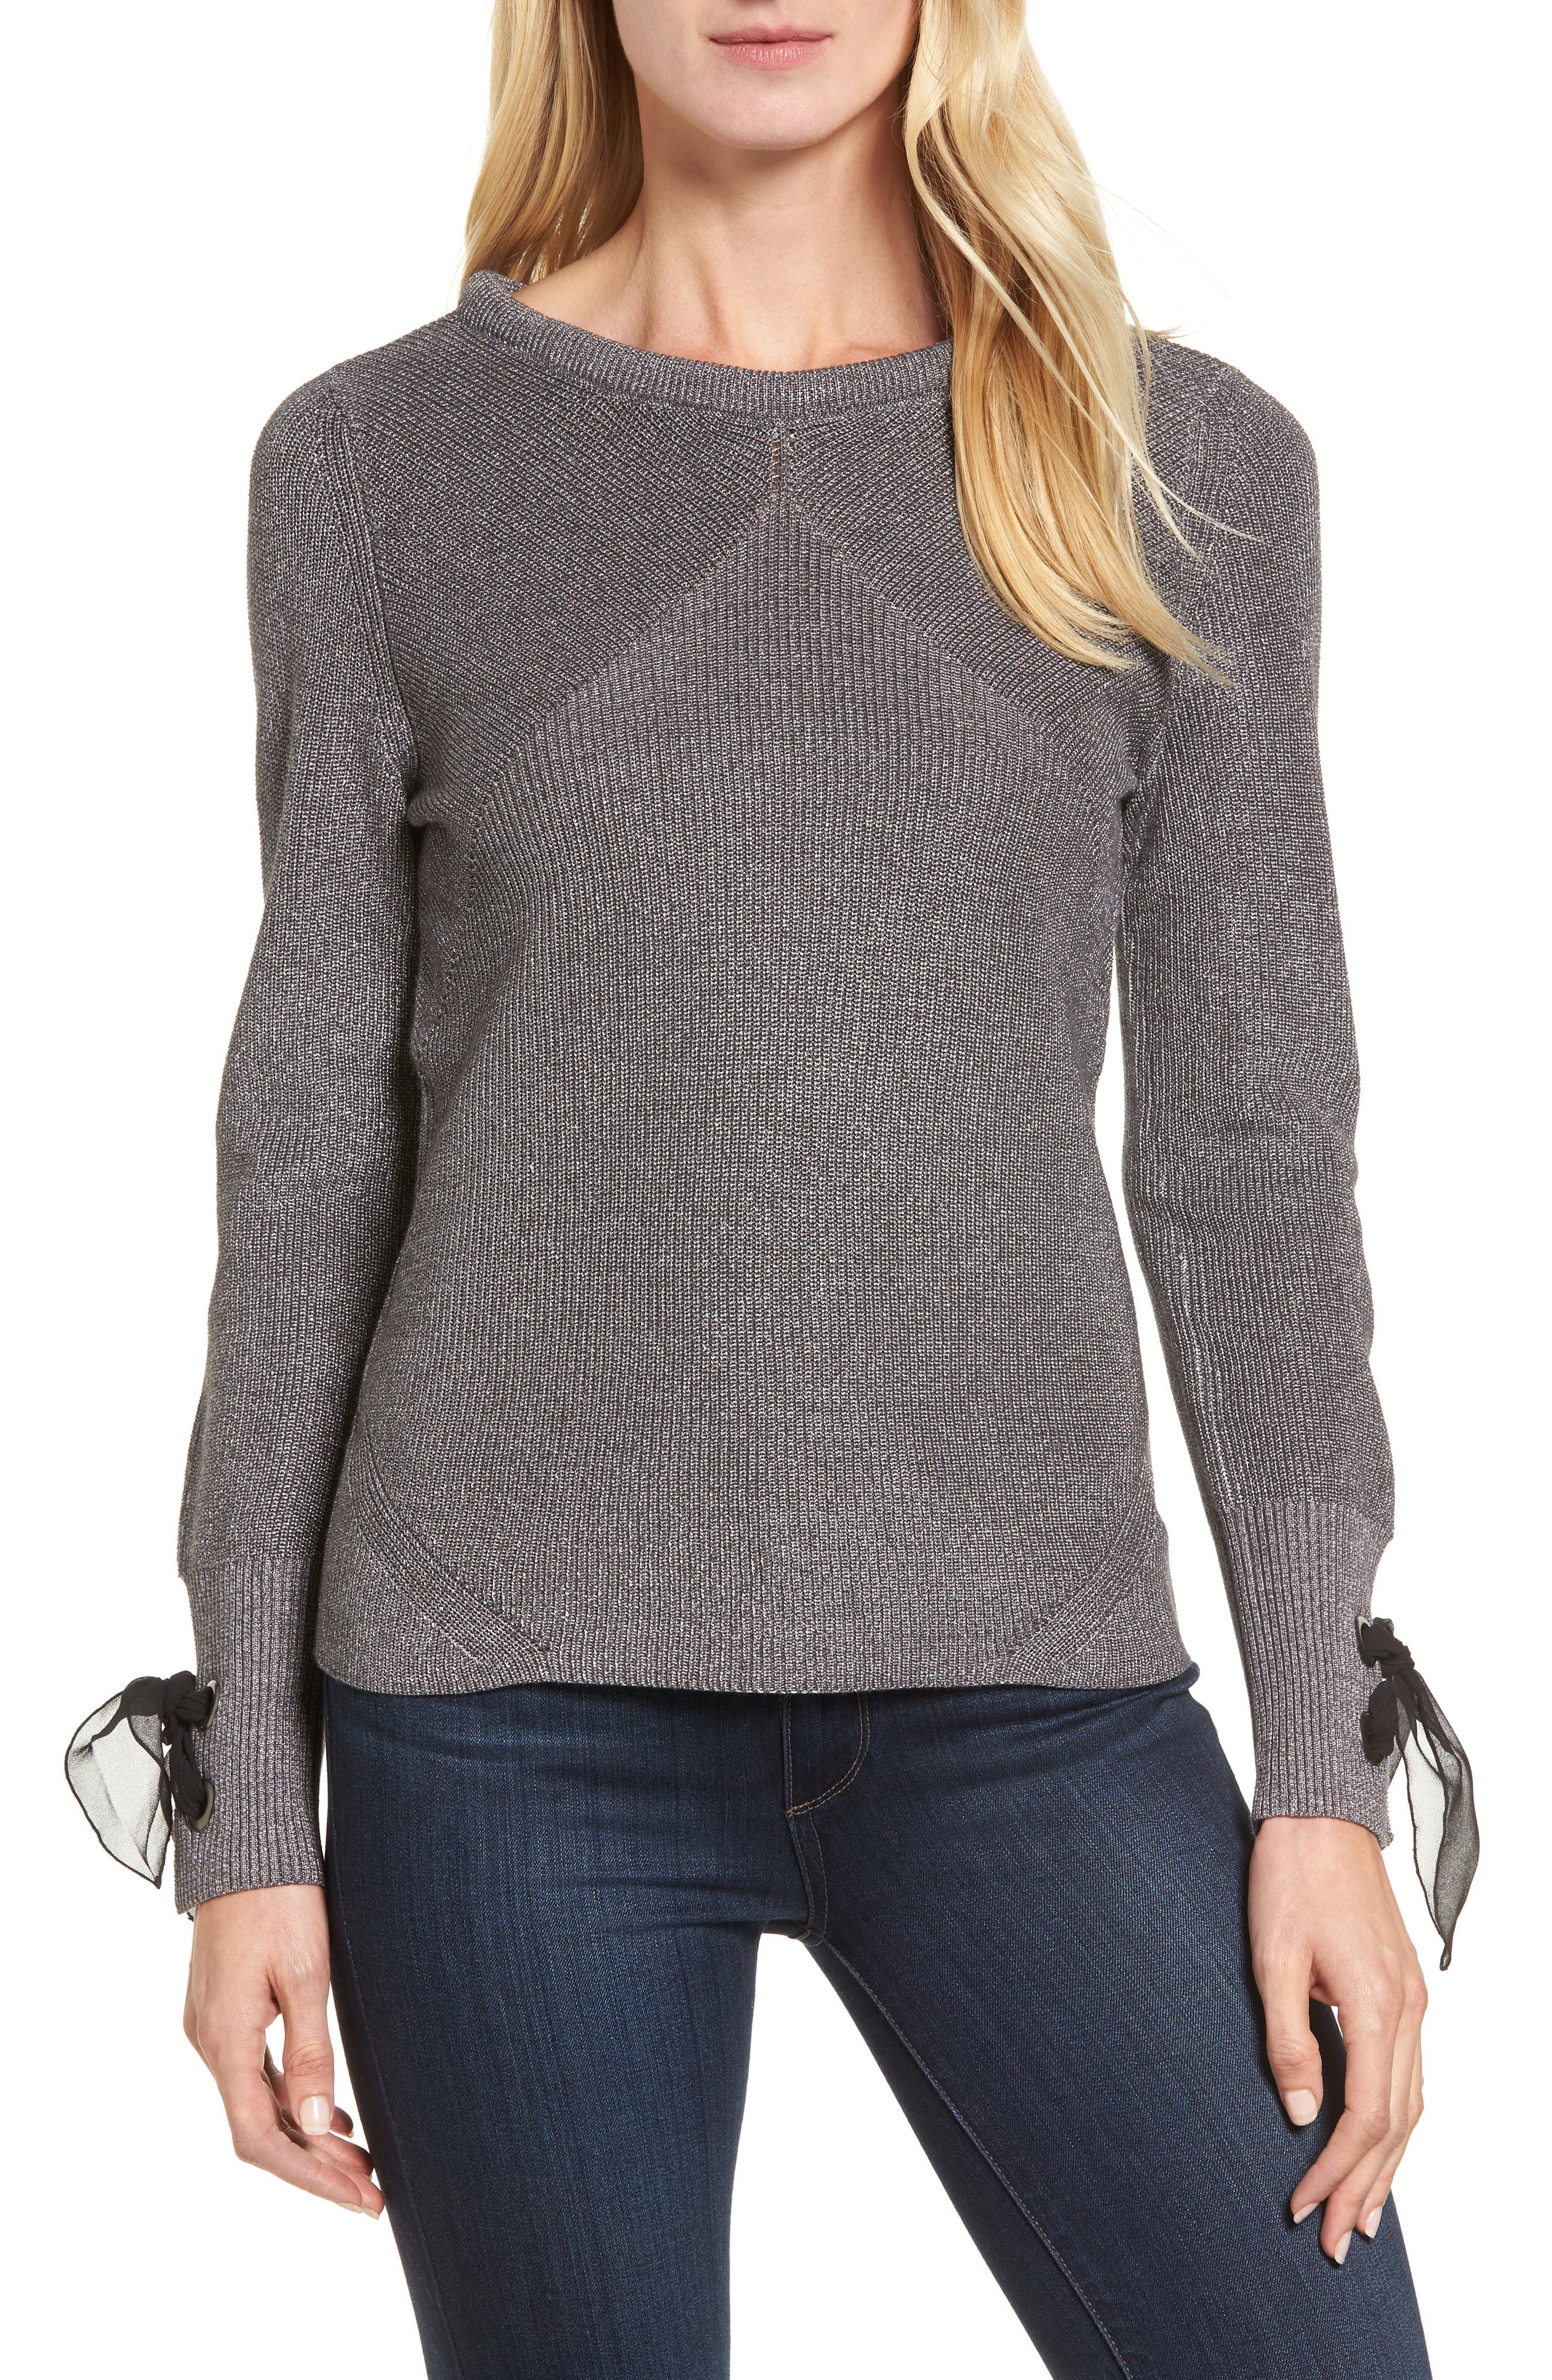 NIC+ZOE Metallic Muse Top (Regular & Petite)